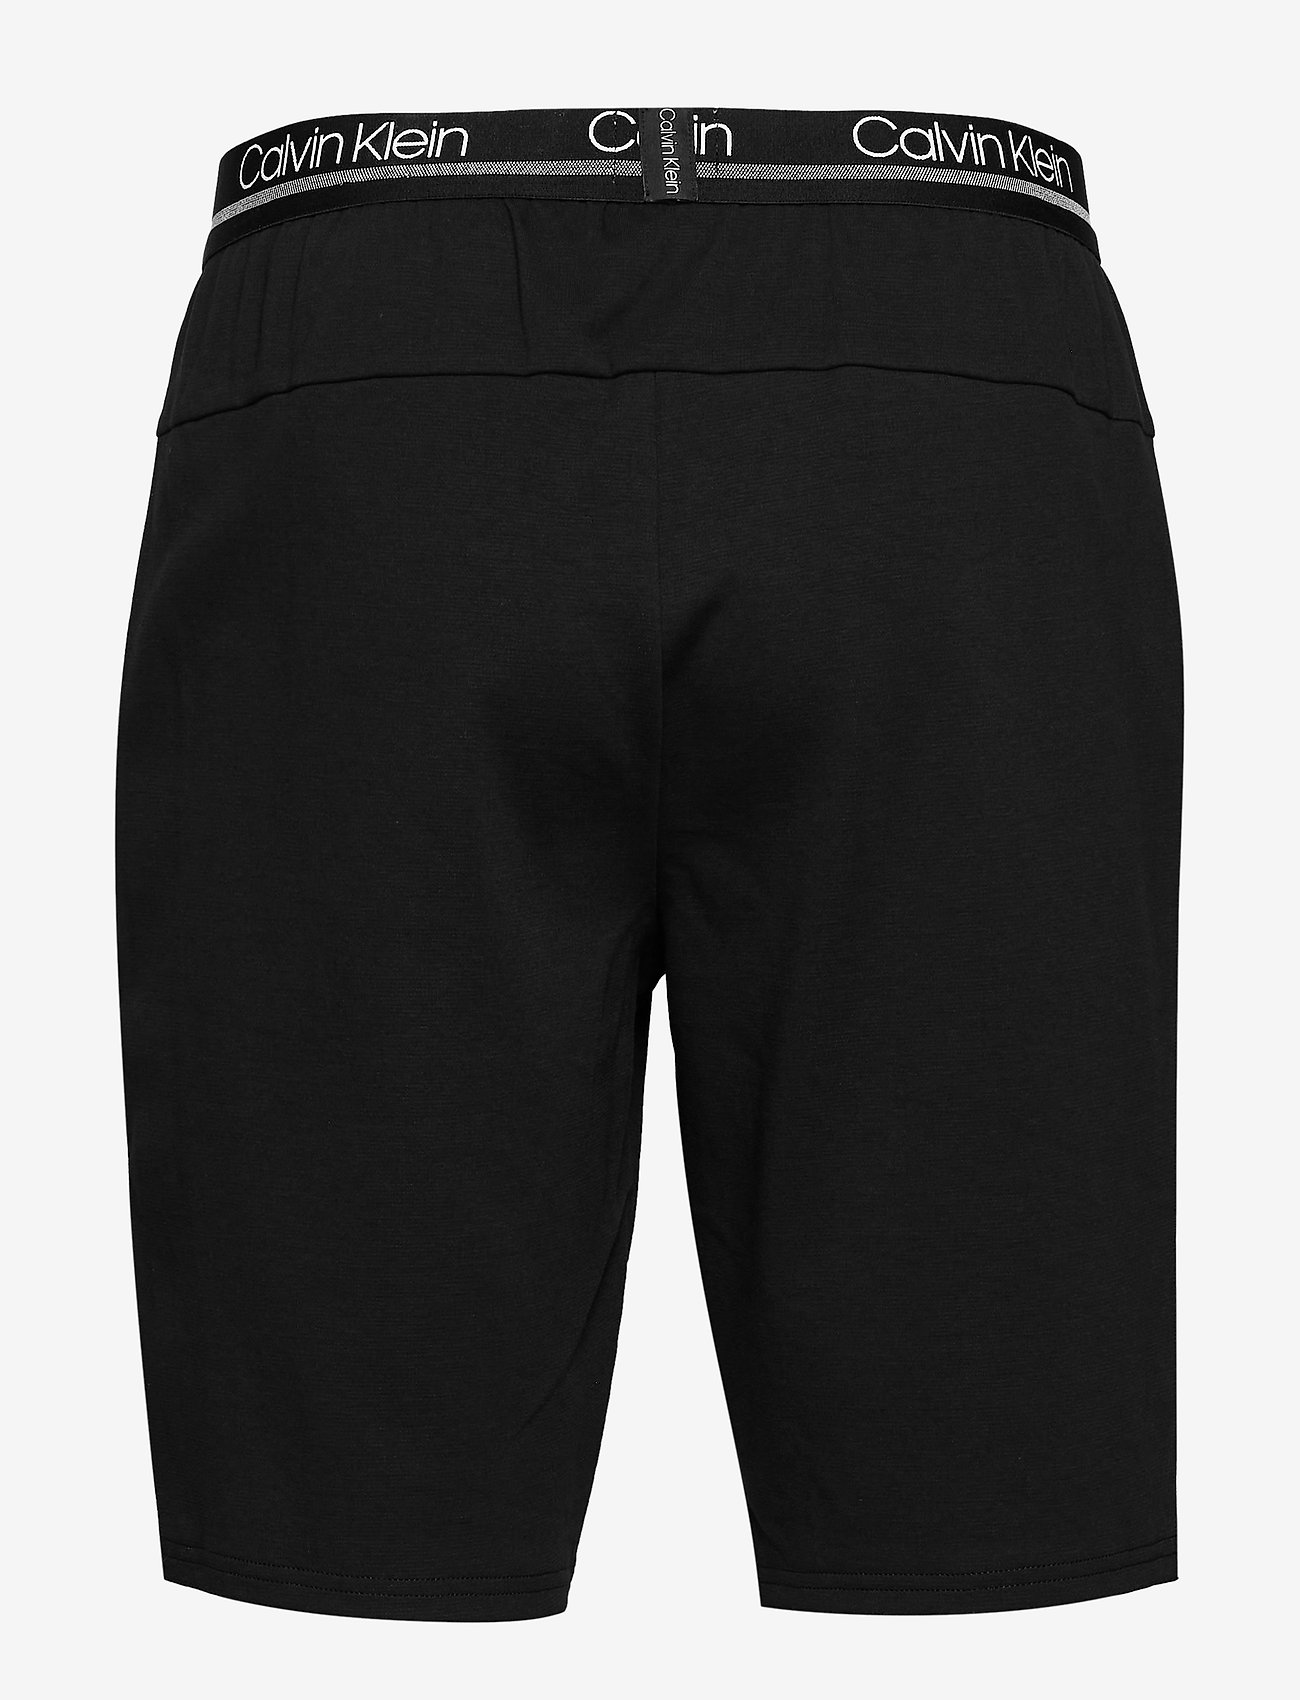 Calvin Klein - SLEEP SHORT - bottoms - black - 1